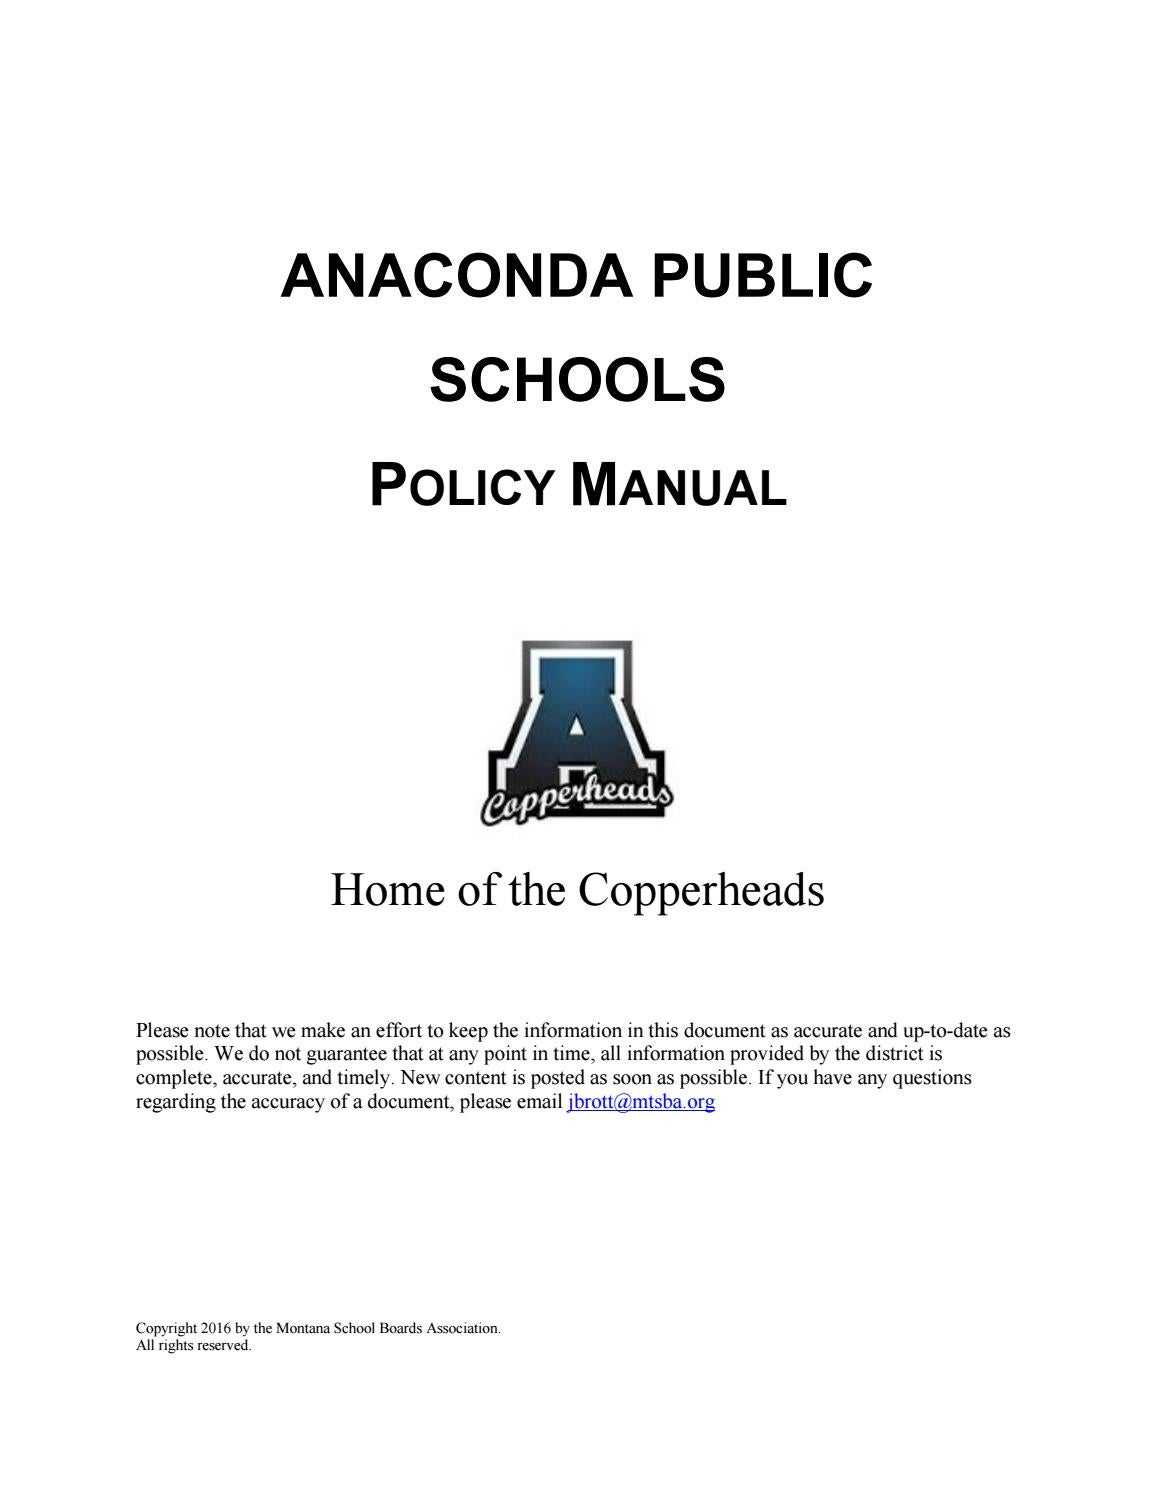 Anaconda Public Schools Policy Manual by Montana School